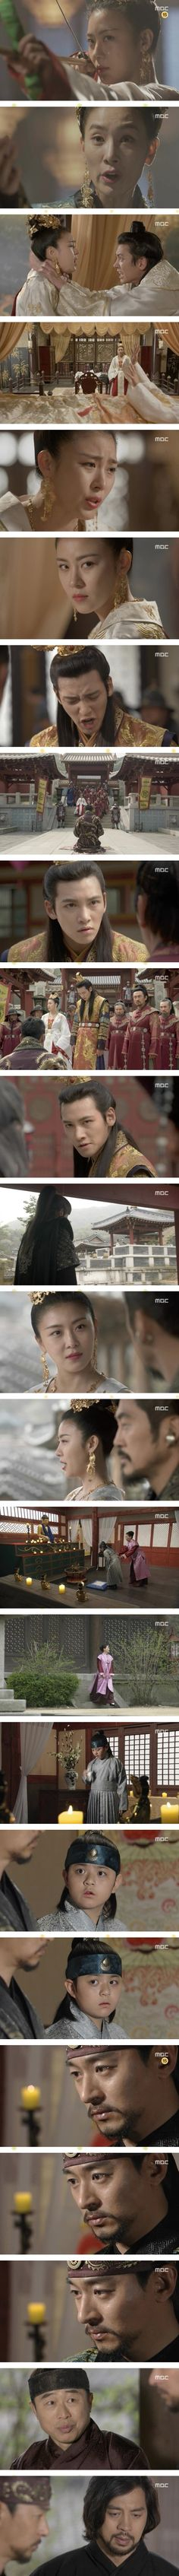 Empress Qi (기황후) Korean - Drama - Episode 47 - Picture @ HanCinema :: The Korean Movie and Drama Database